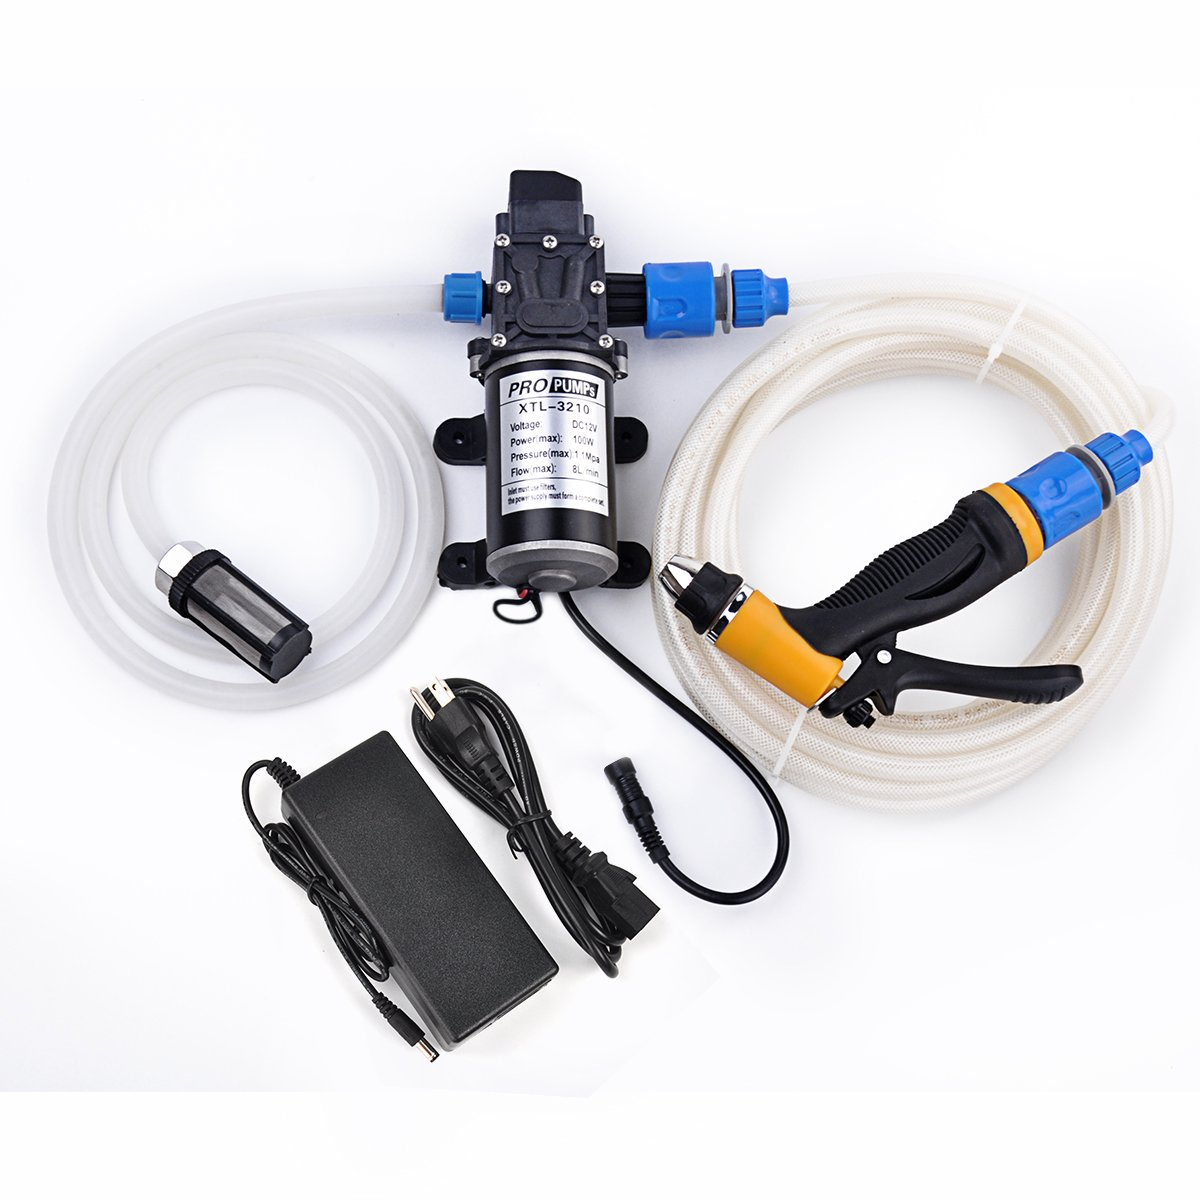 Dewel 100W 12V Portable Pressure Washer Car Wash Cleaning System Kit 200PSI Water Pump for Auto, Marine, Pet, Window,Travel, Gardening and Camping (100W with Power adapter)